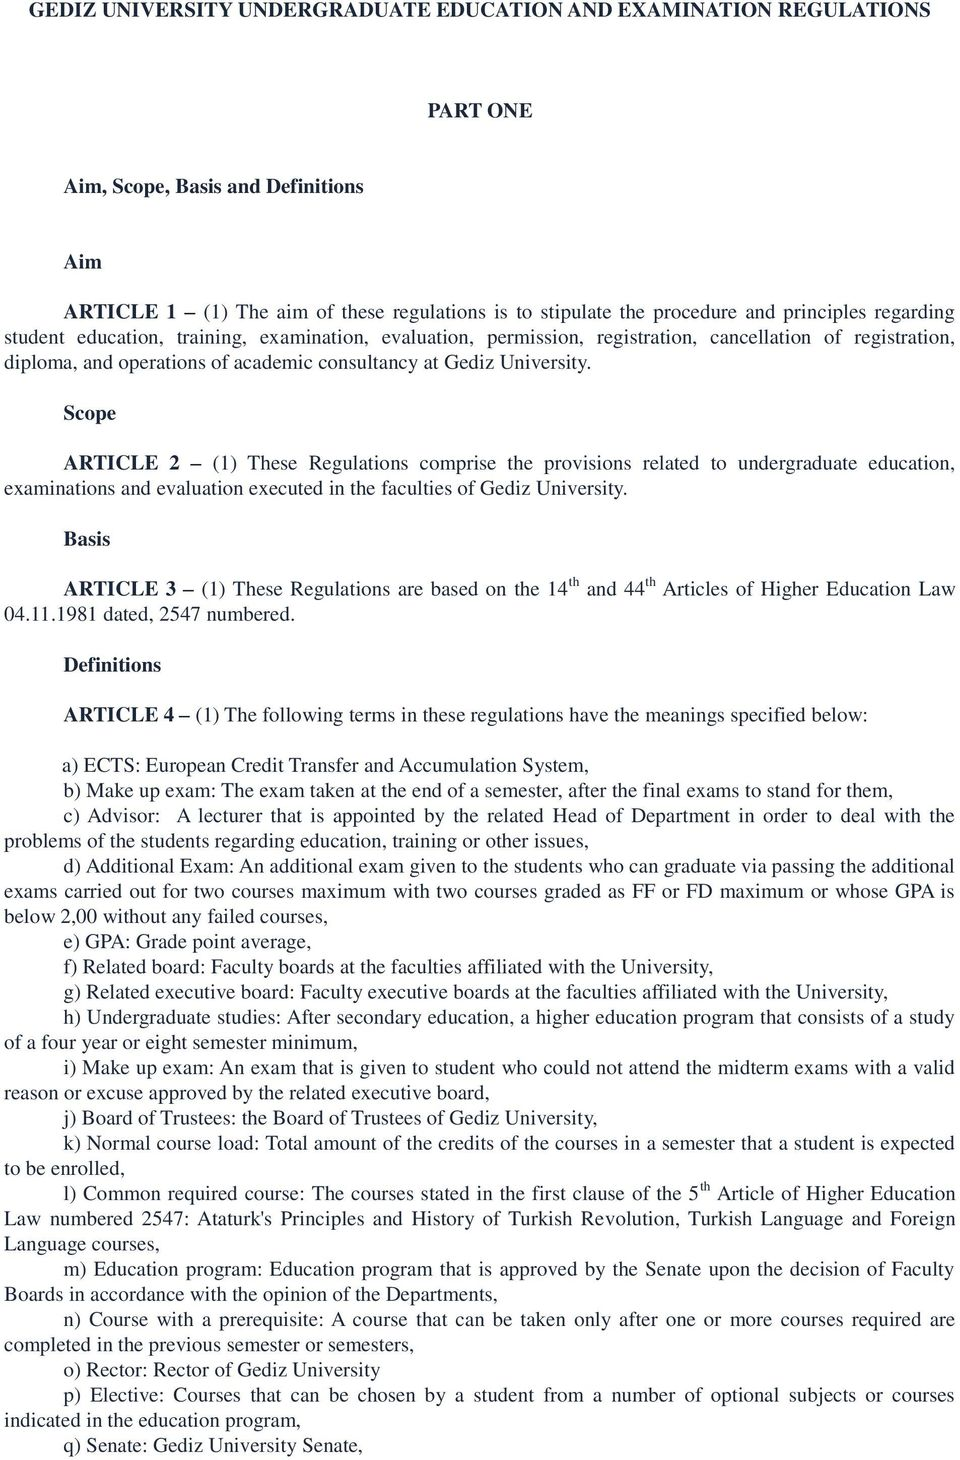 Scope ARTICLE 2 (1) These Regulations comprise the provisions related to undergraduate education, examinations and evaluation executed in the faculties of Gediz University.